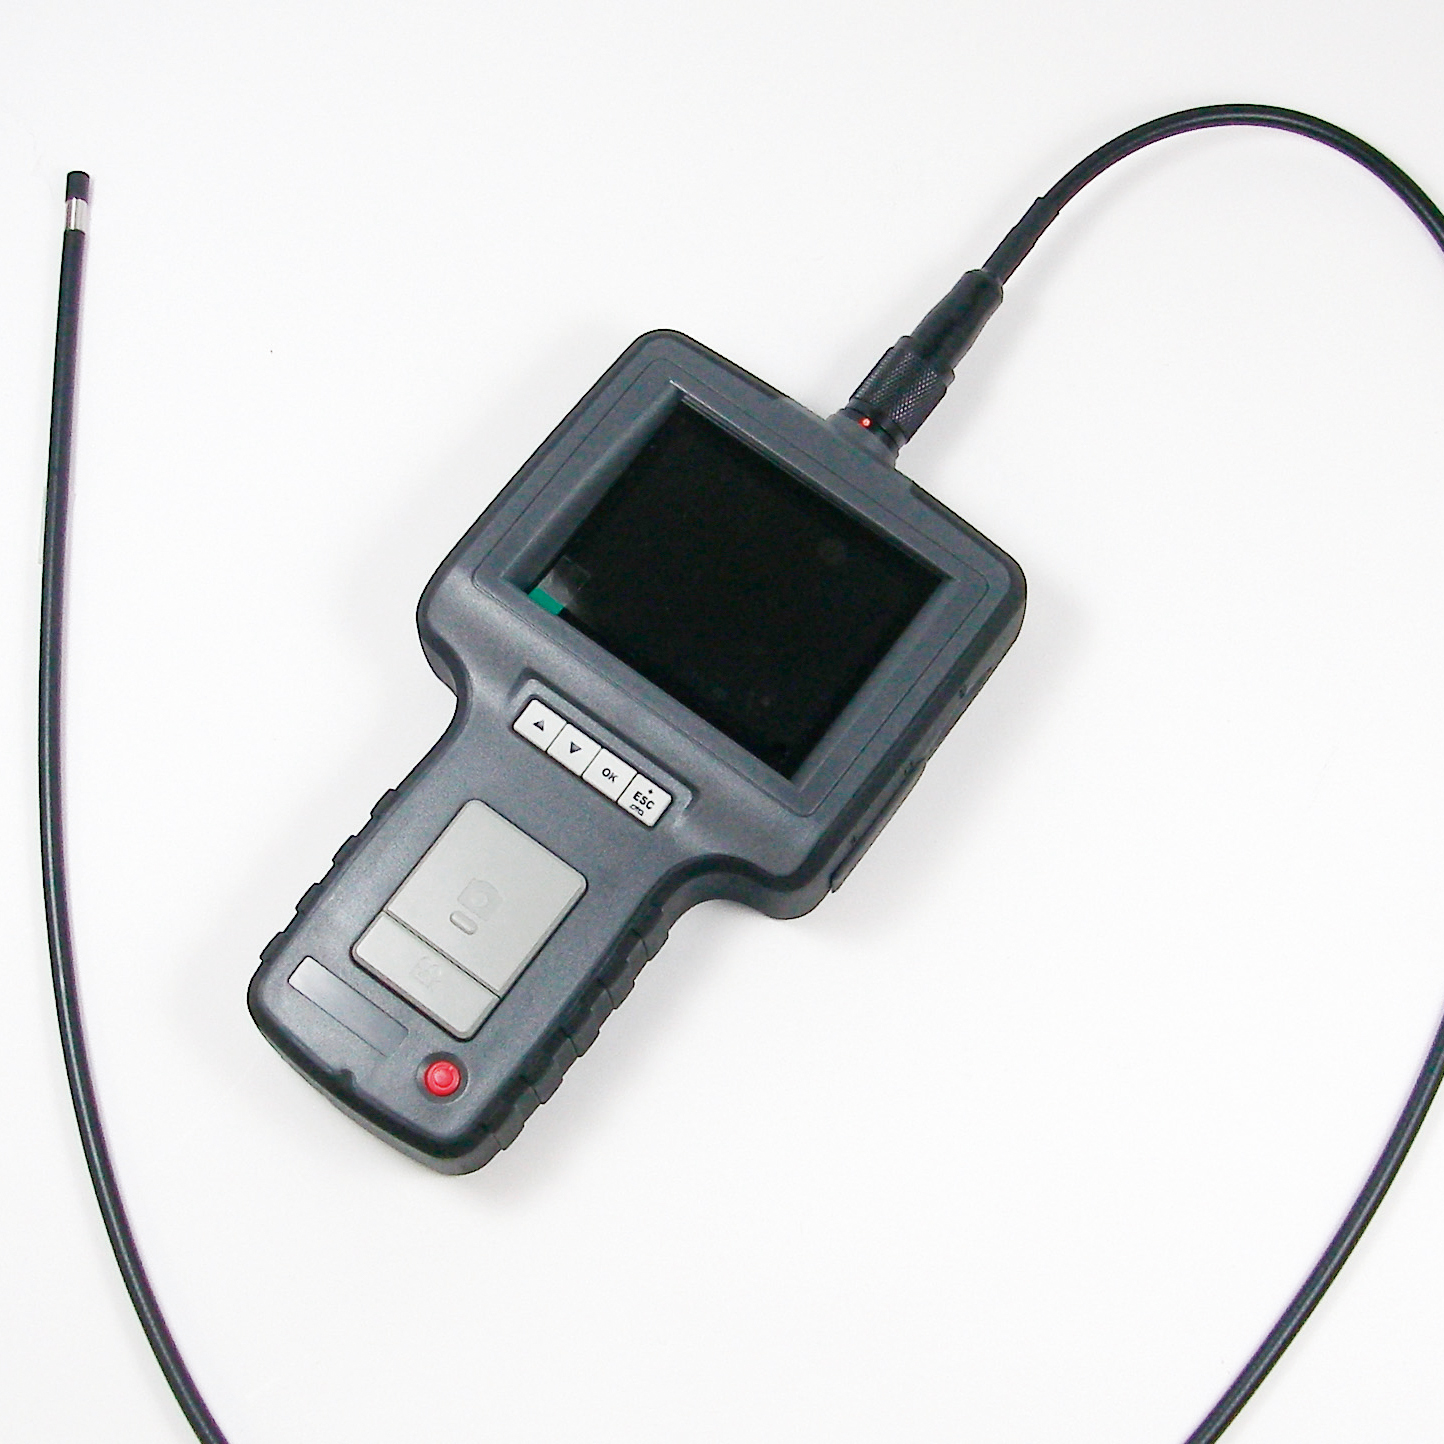 Endoscope with built-in 3.5 inch monitor